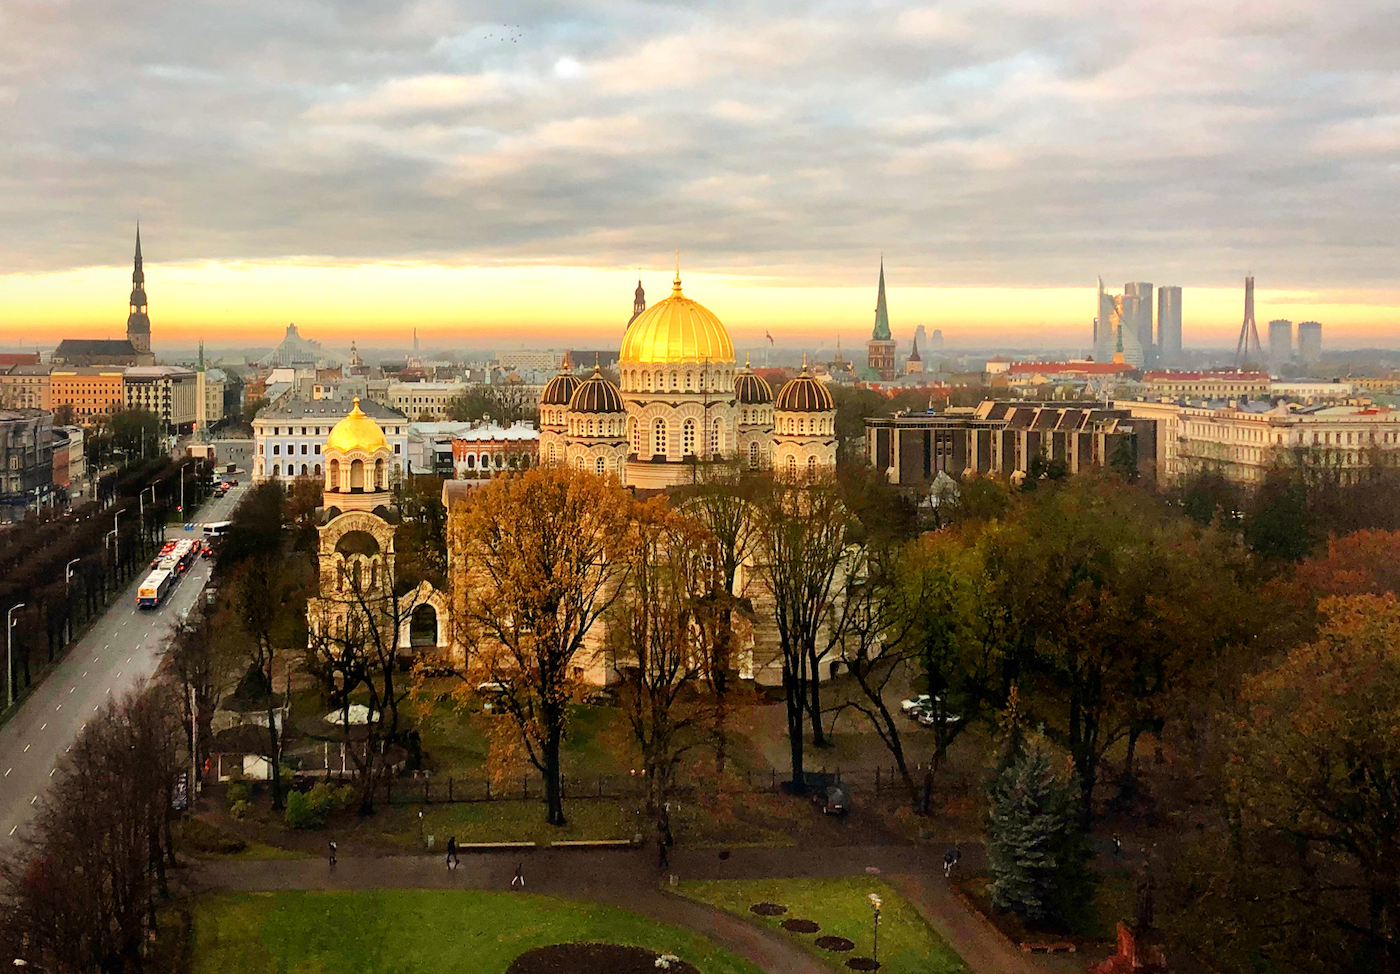 Sunrise, facing the old city of Riga, Latvia, November 2019. Taken from my hotel room at the Radisson.